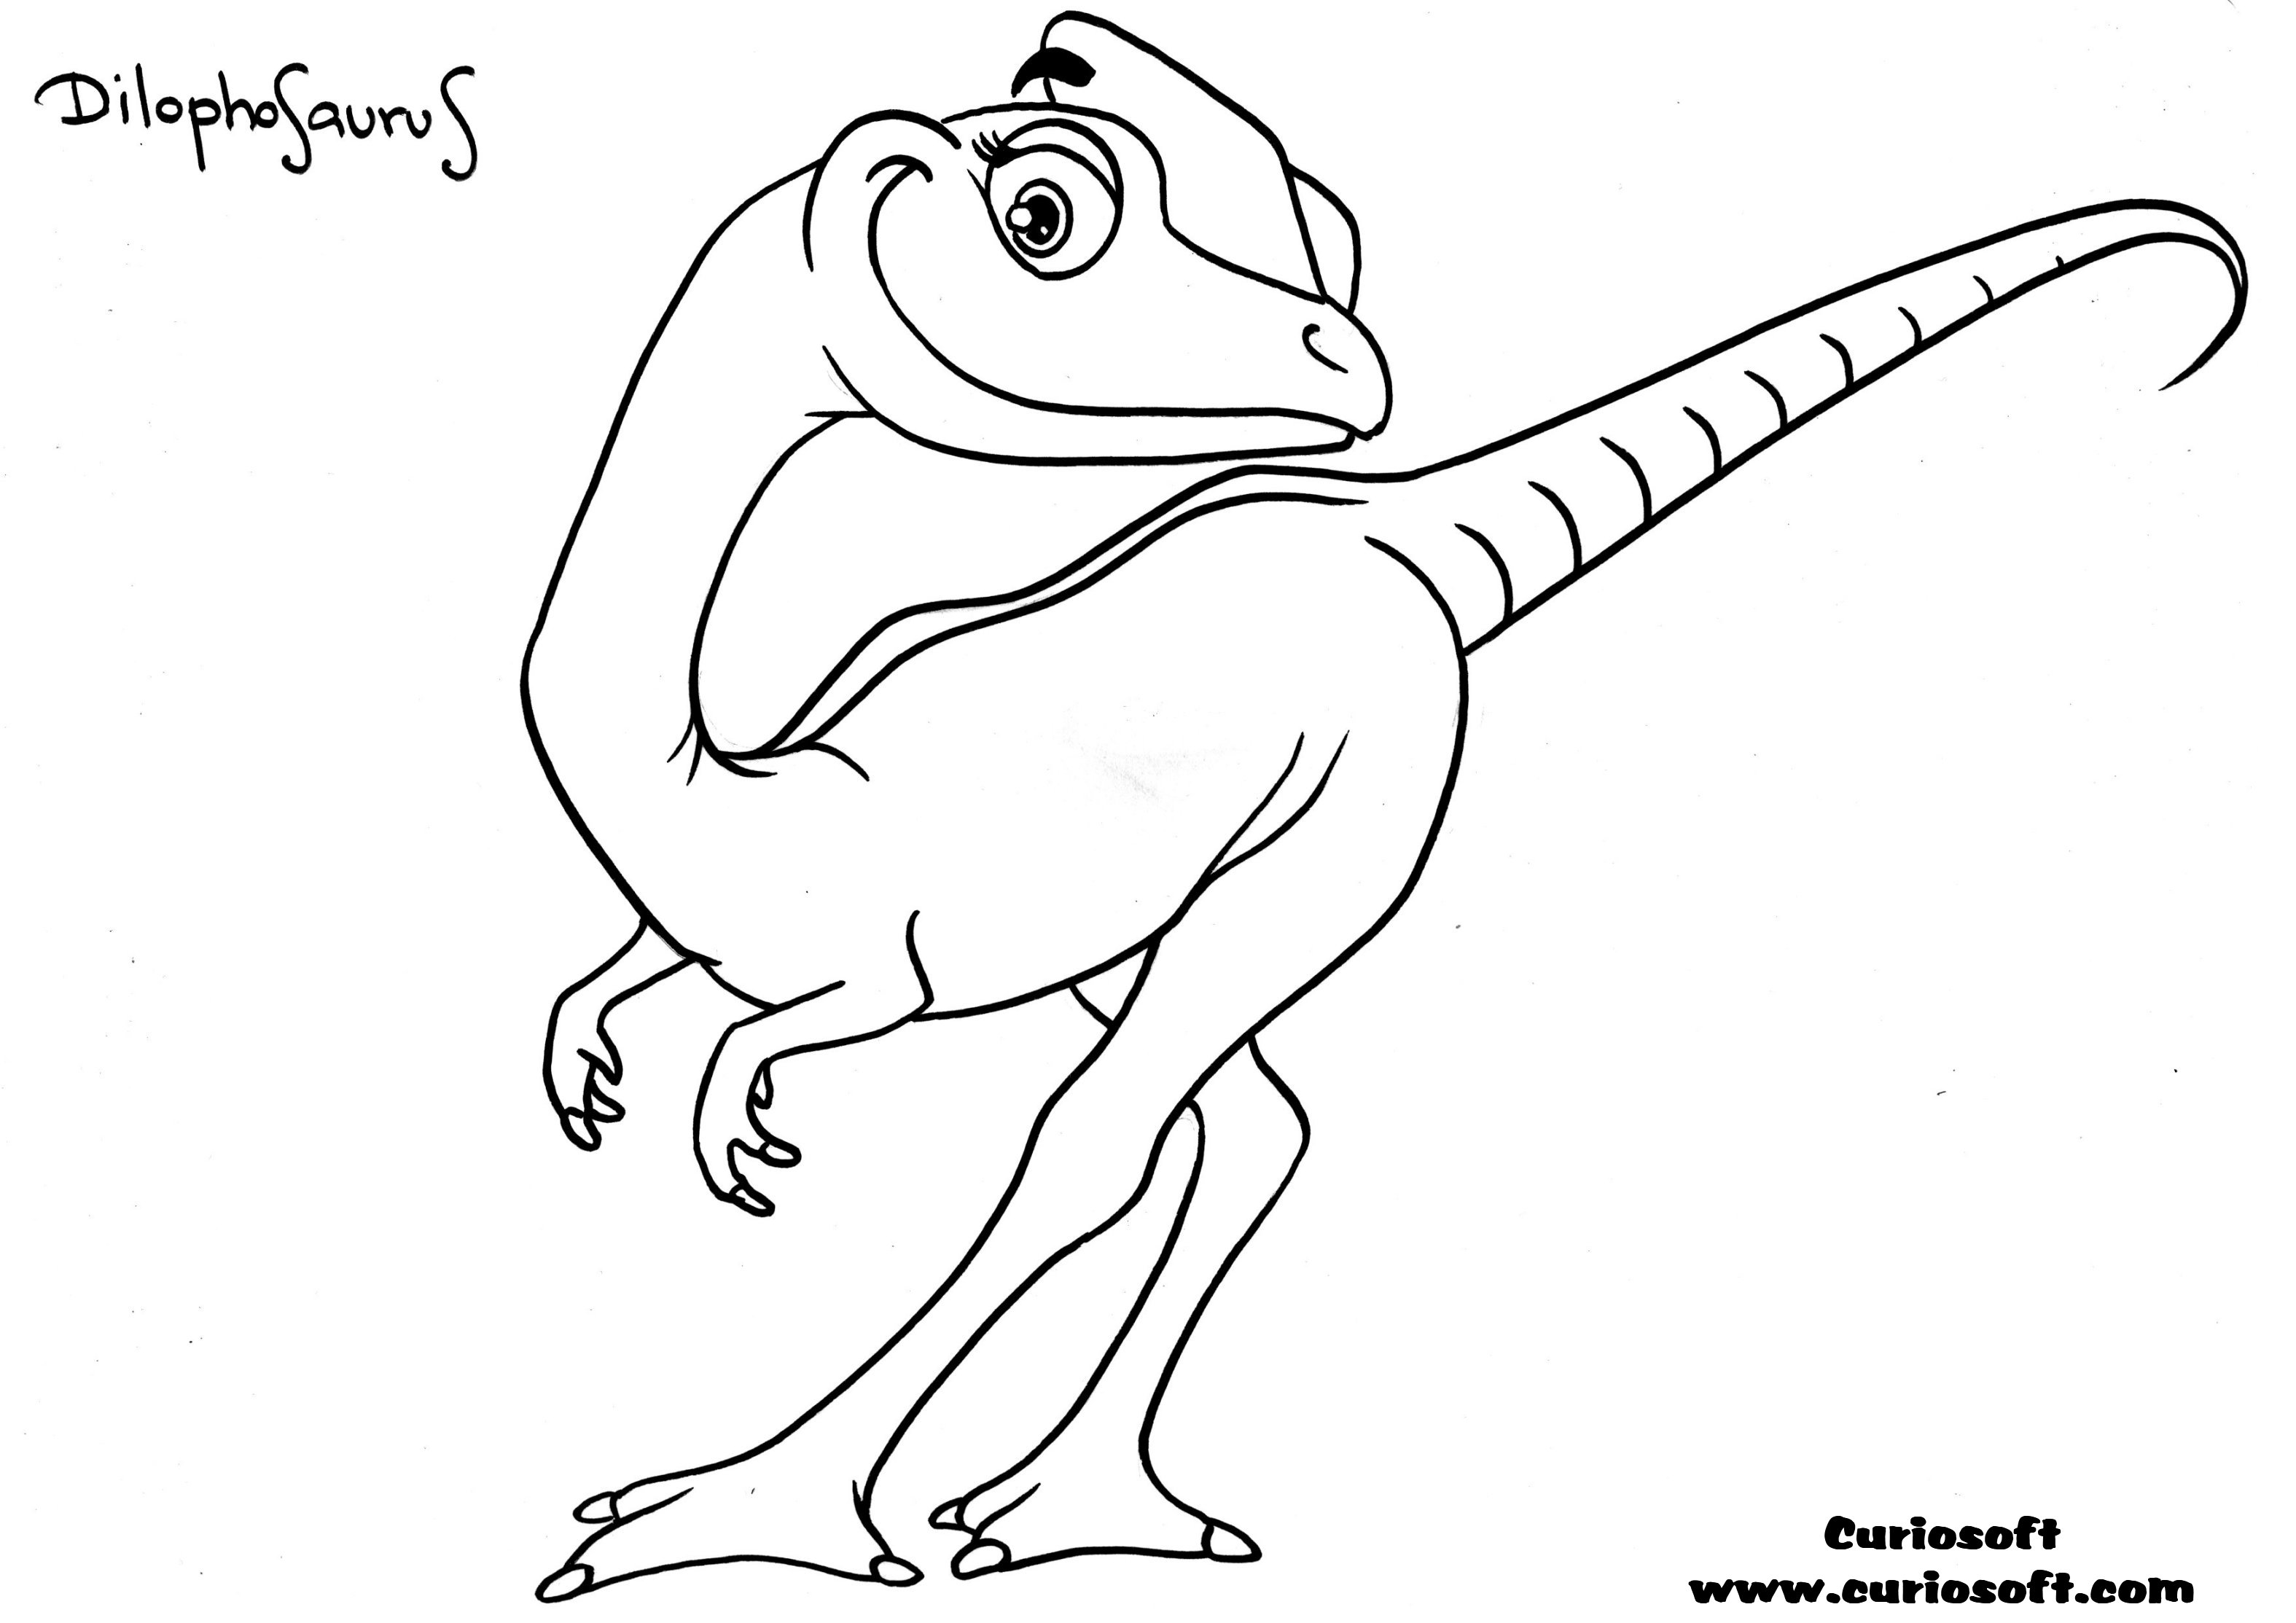 jurassic park coloring pages dilophosaurus - photo#12